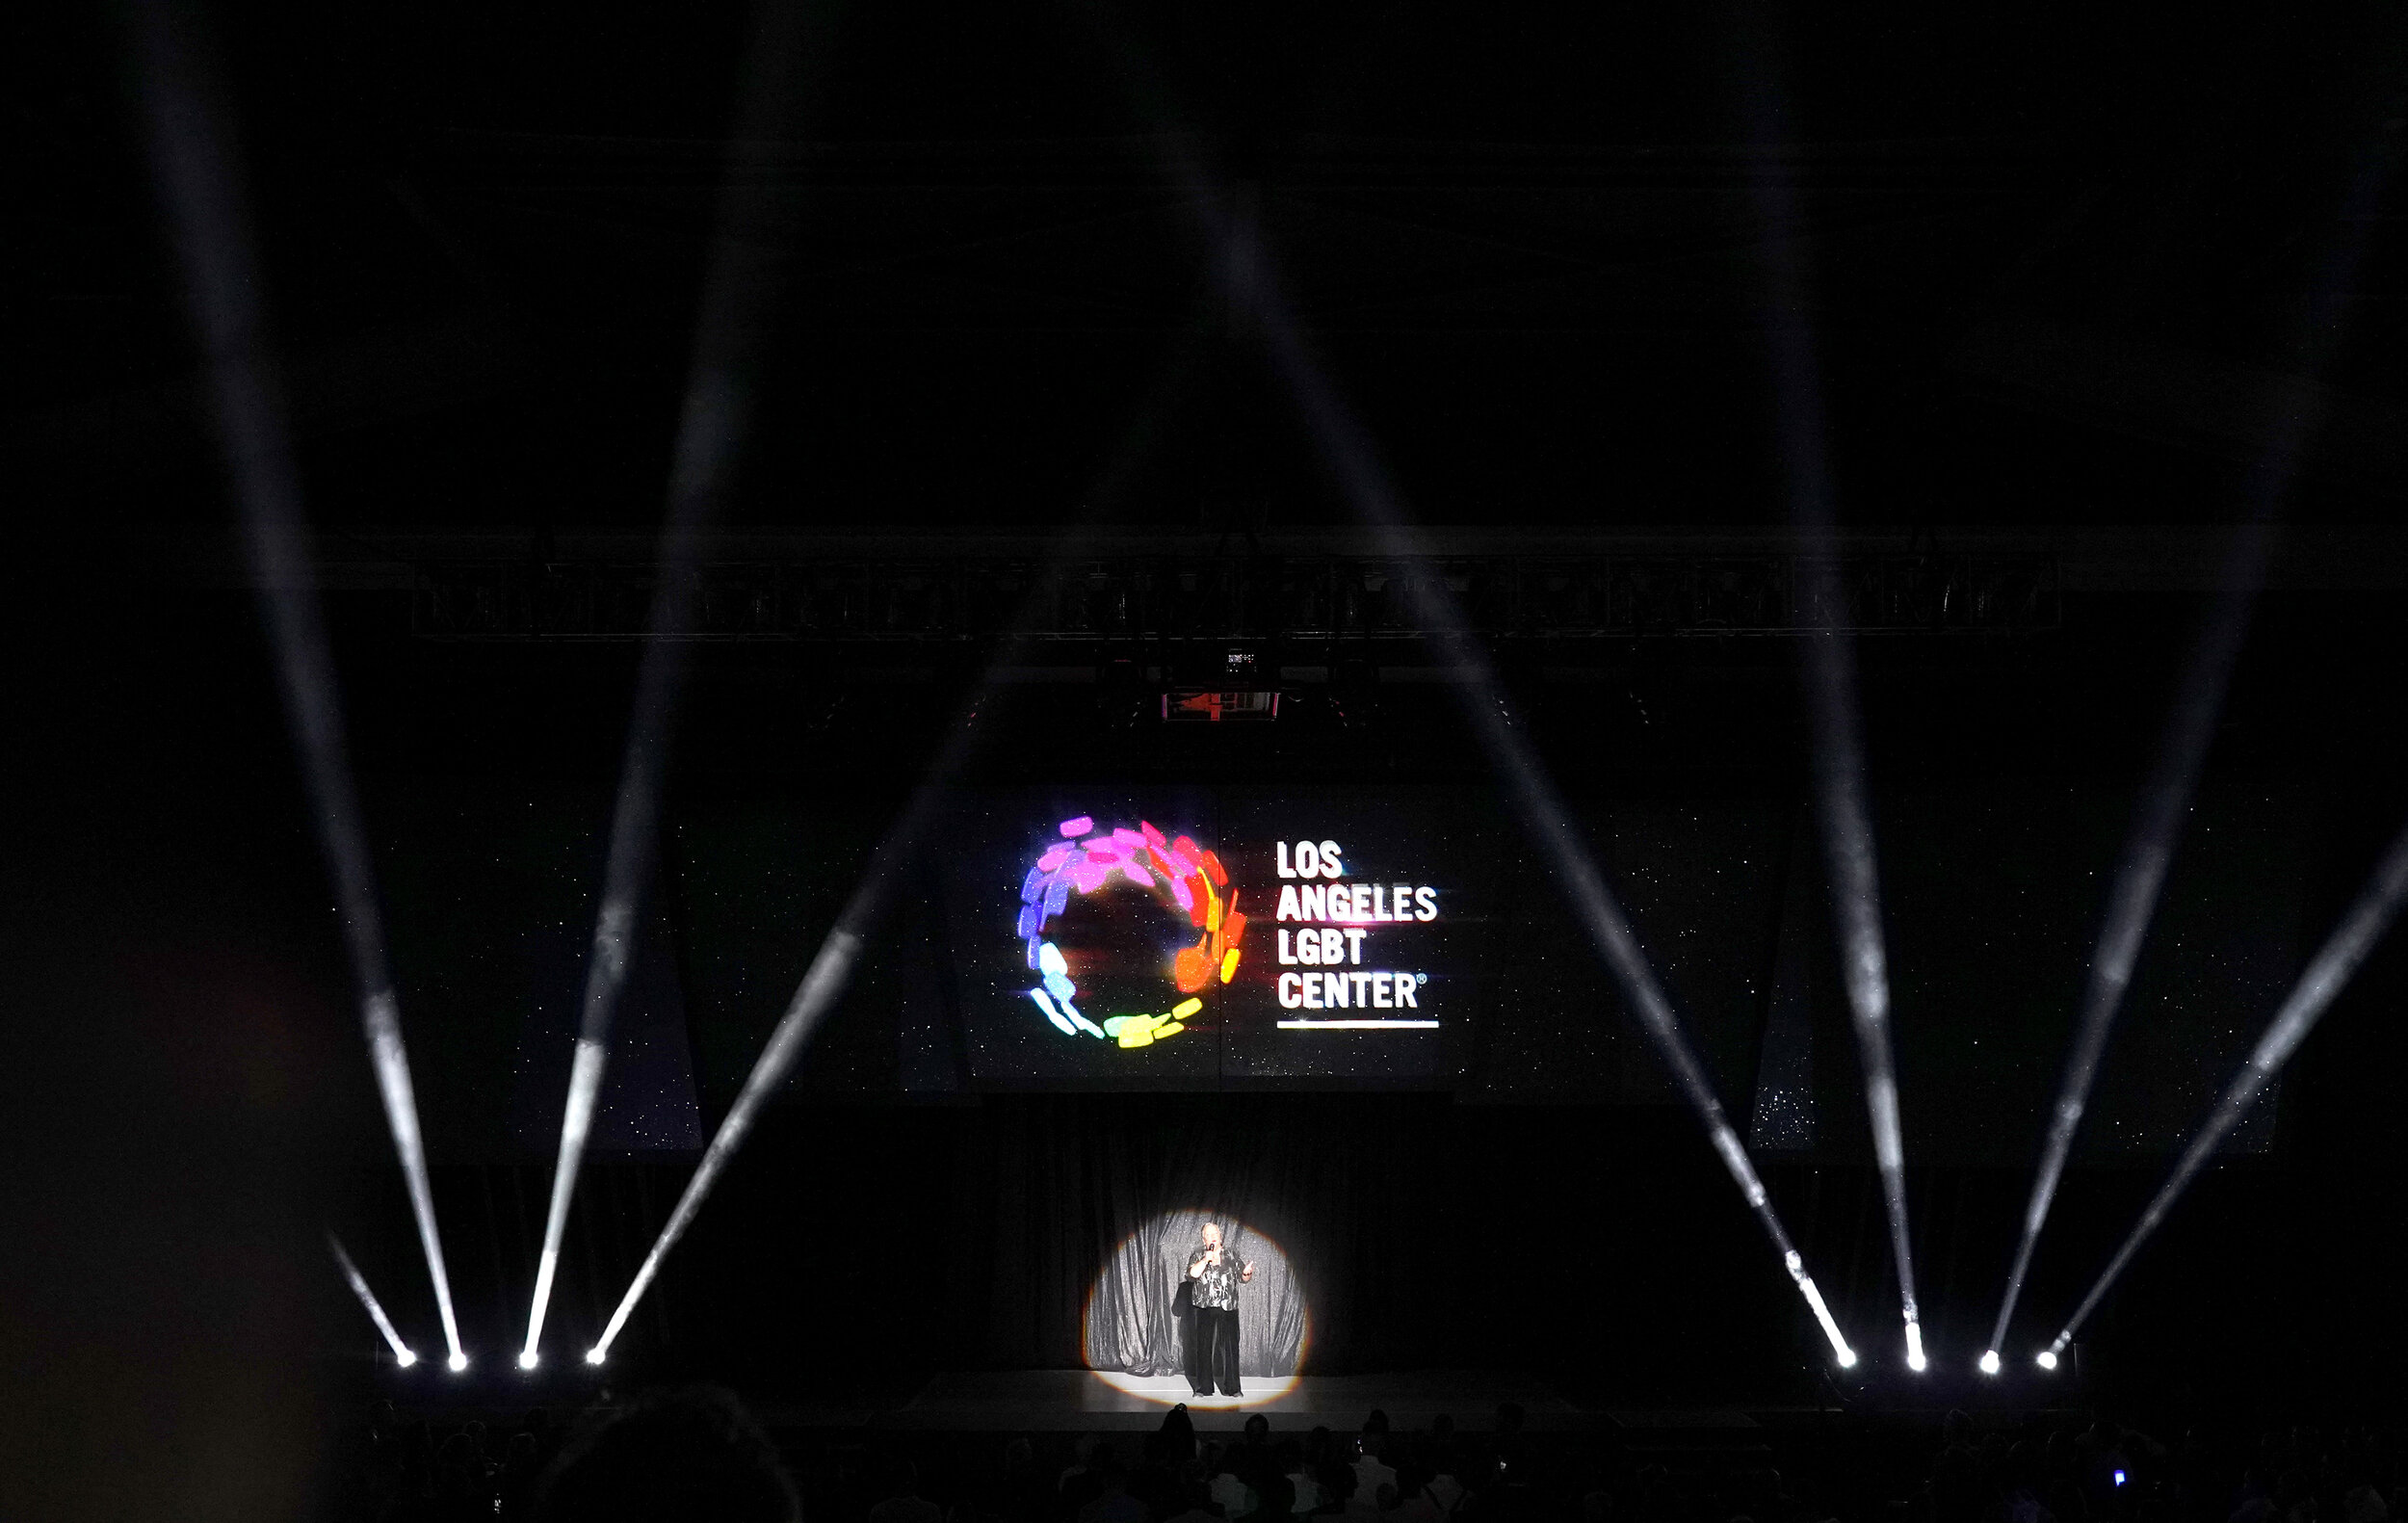 CEO of the Los Angeles LGBT Center Lorri Jean speaks onstage at Los Angeles LGBT Center Celebrates 50th Anniversary With Hearts Of Gold Concert & Multimedia Extravaganza (Photo by Presley Ann_Getty Images).jpg